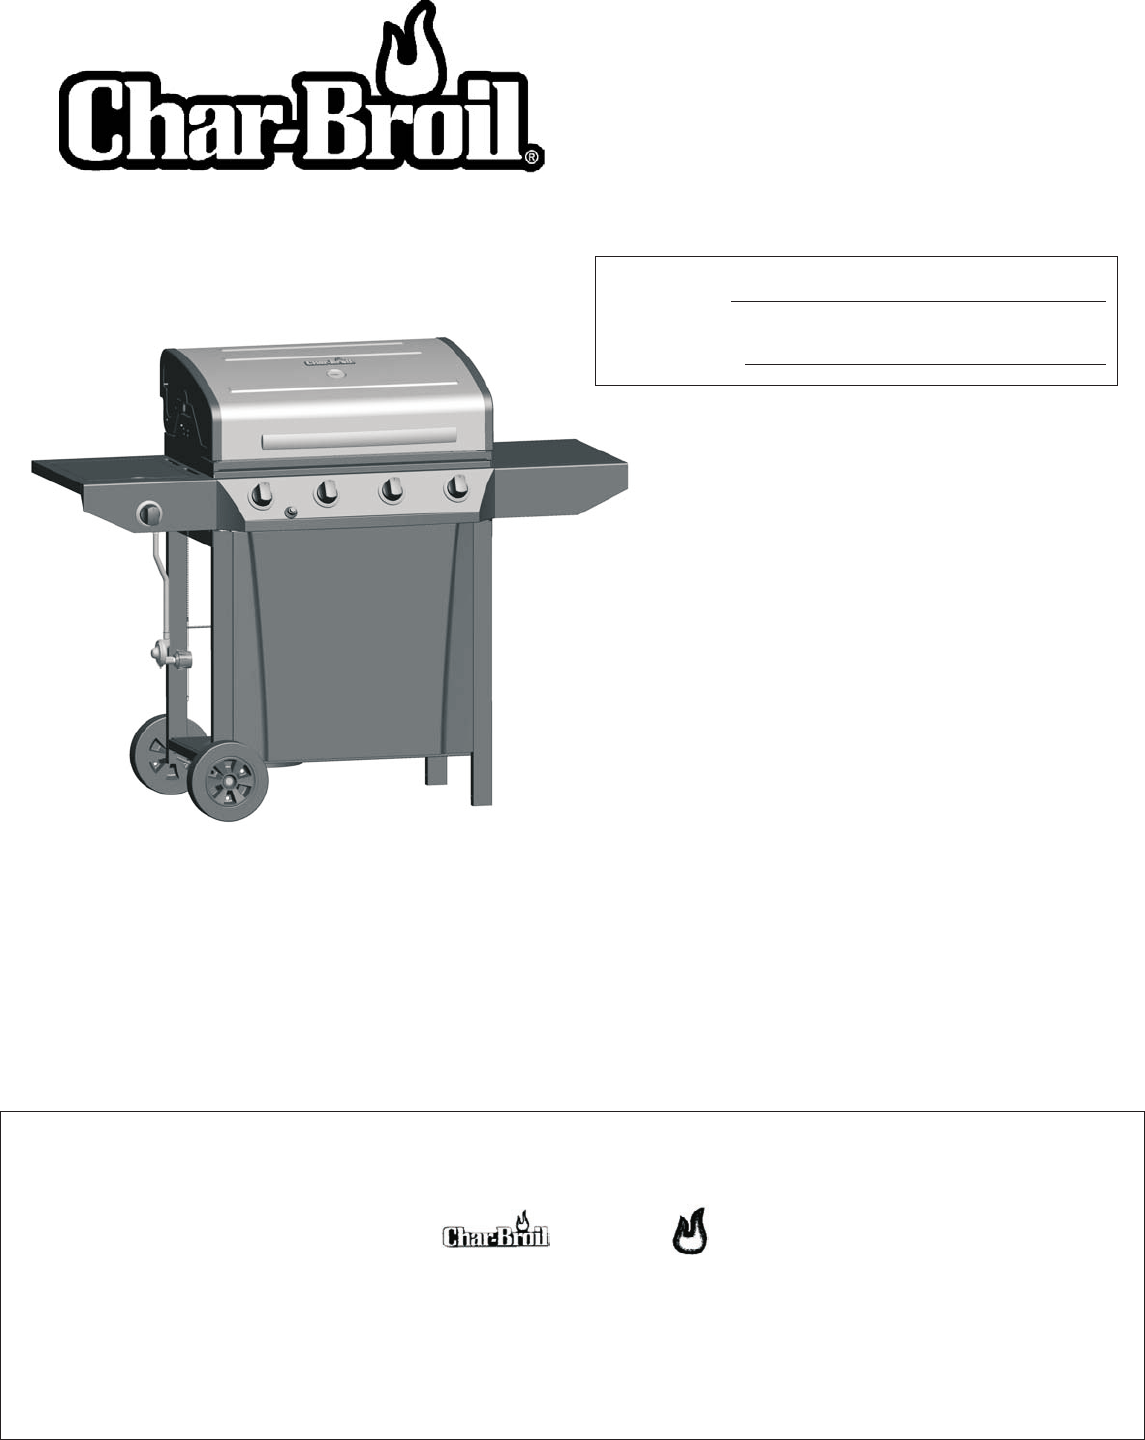 Char Broil Gas Grill 463440109 User